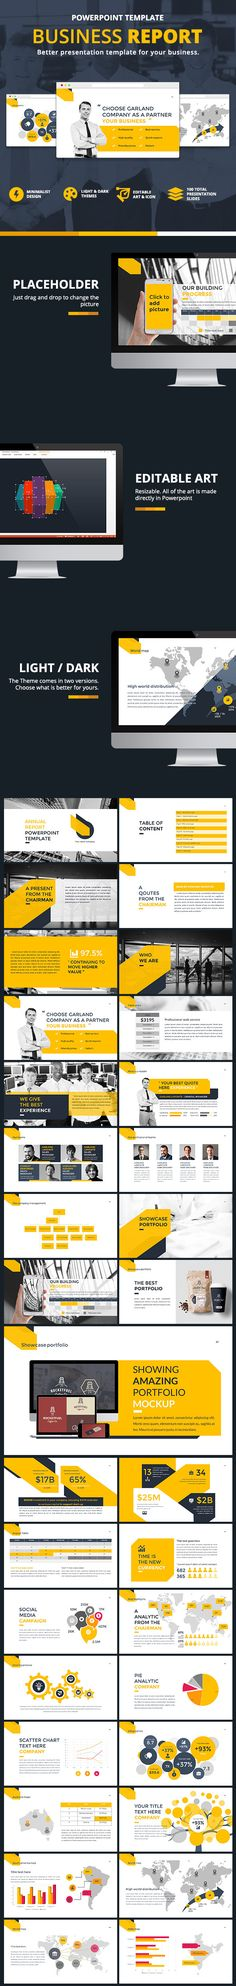 Business report powerpoint template powerpoint templates business report presentation toneelgroepblik Gallery